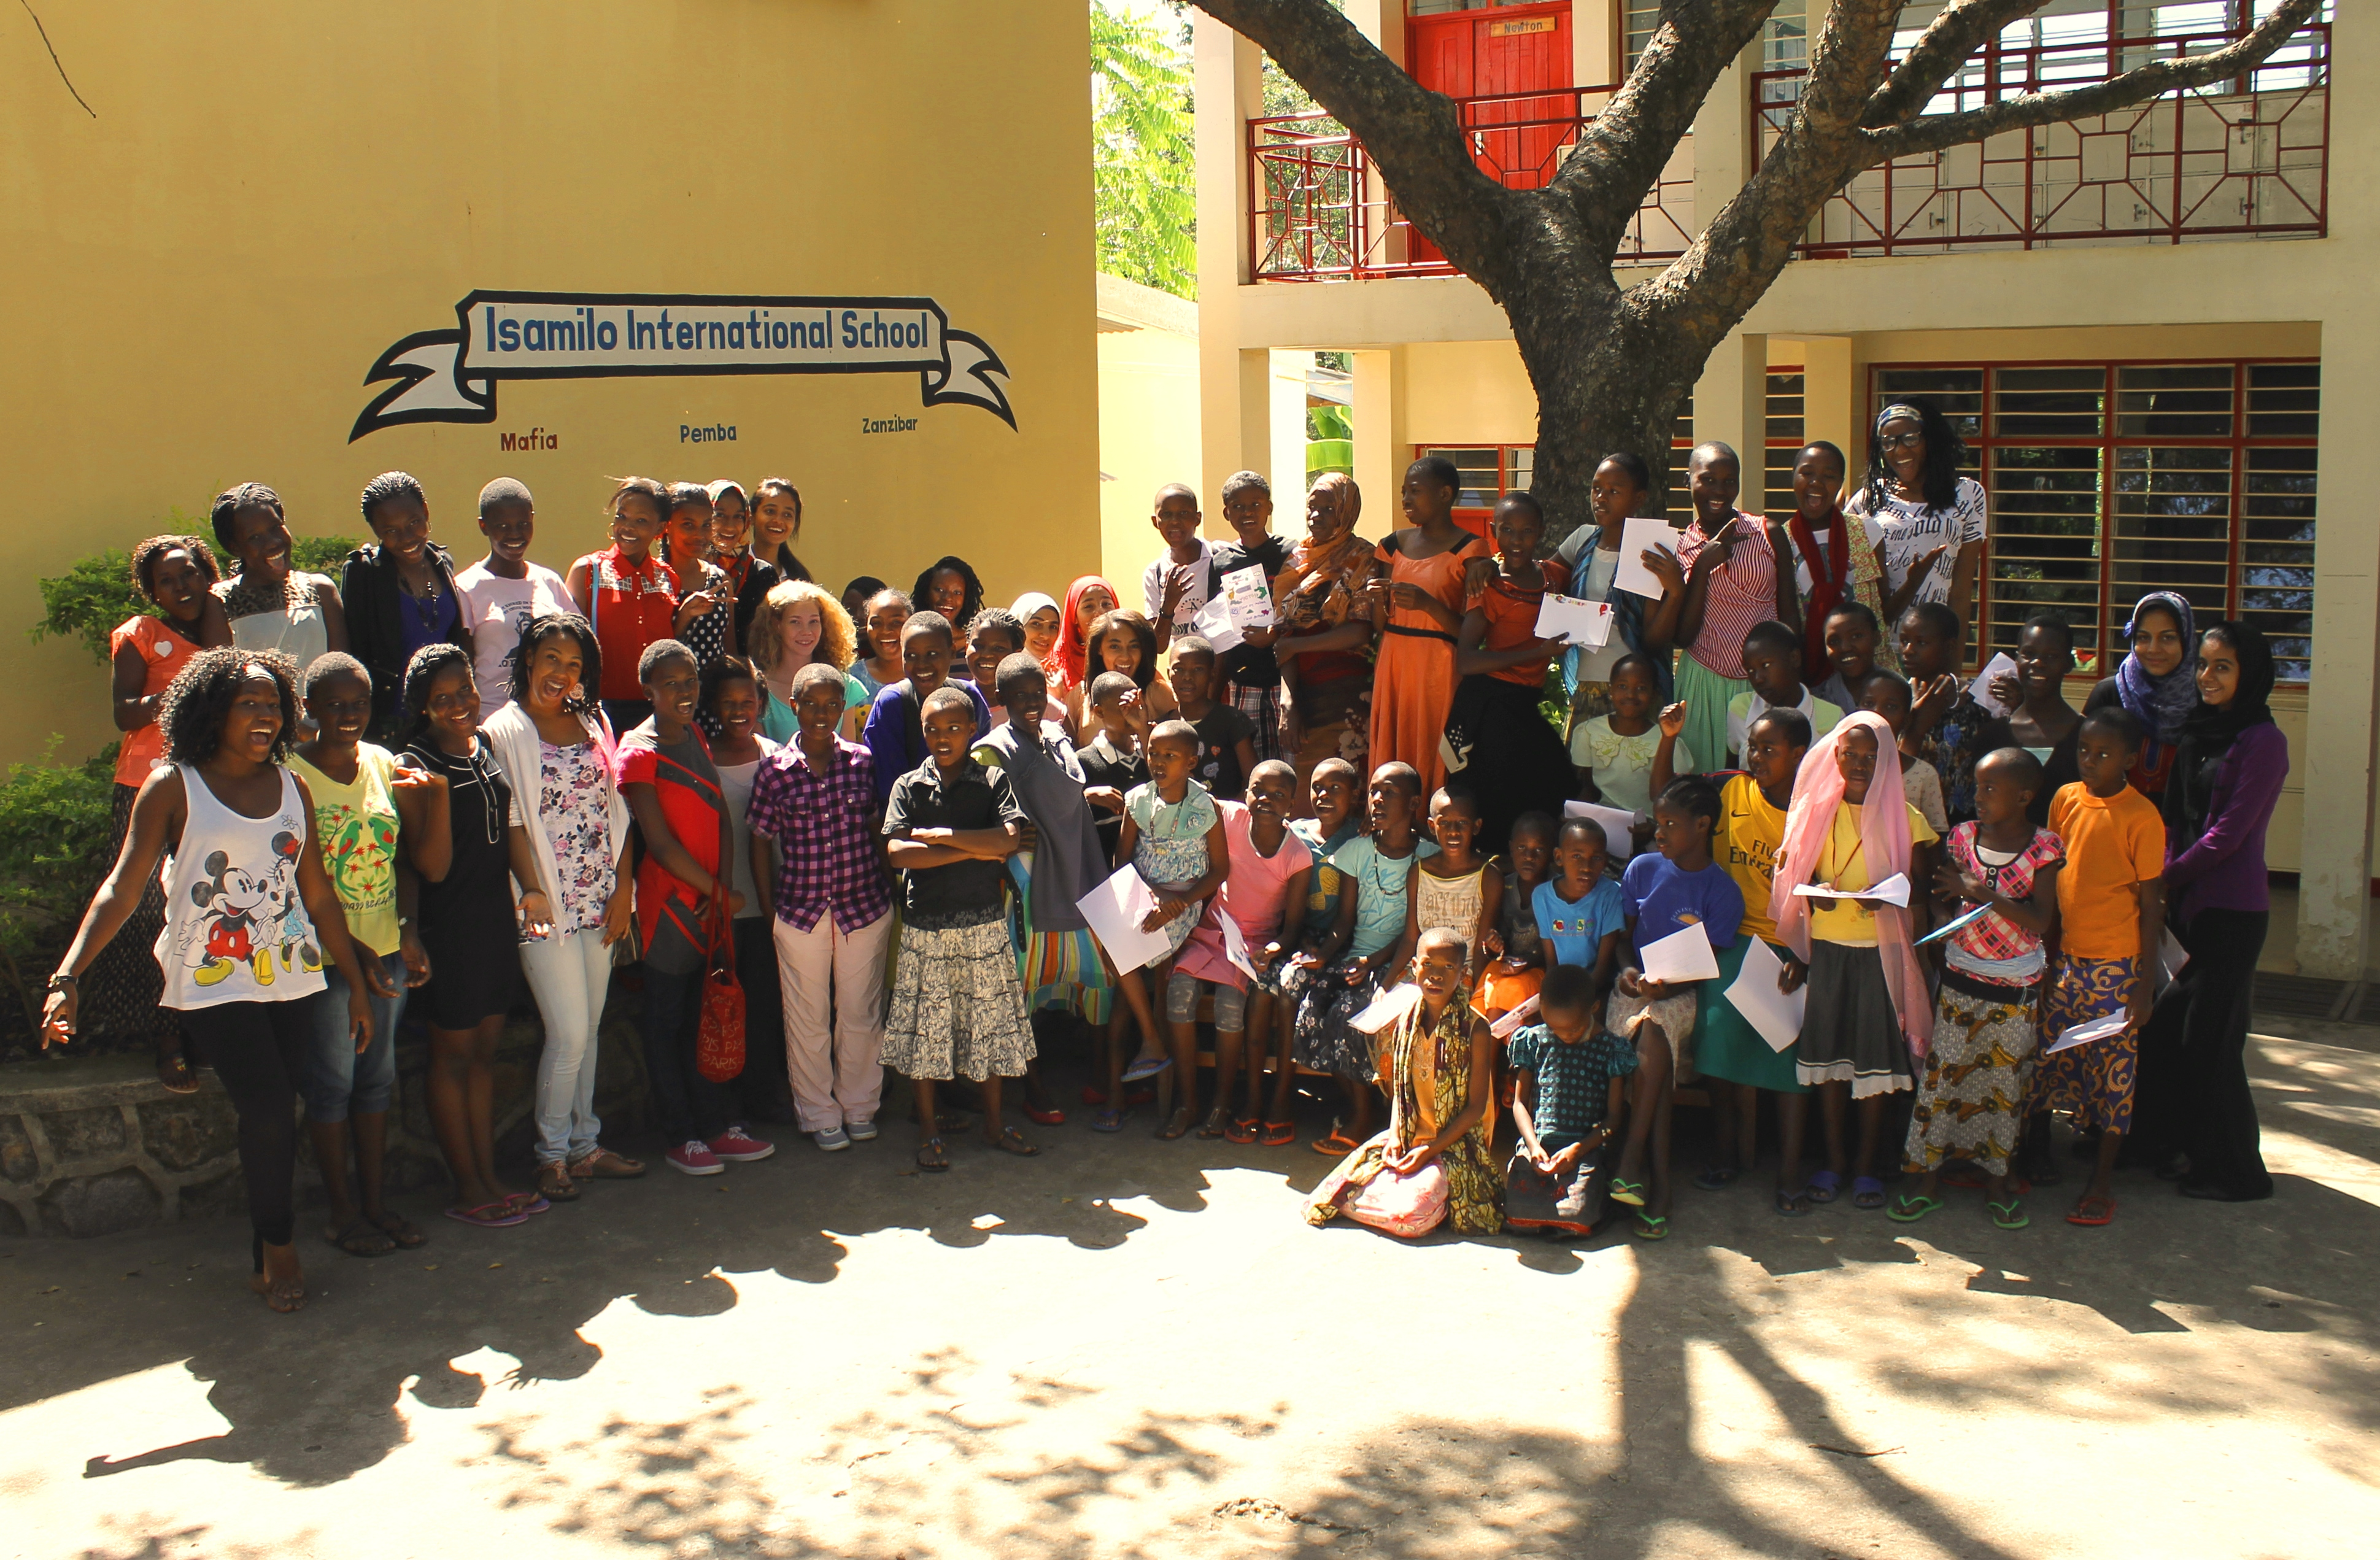 Today's Saturday School - exclusively for girls, to mark International Day of the Girl Child, at Isamilo International School, Mwanza, Tanzania.